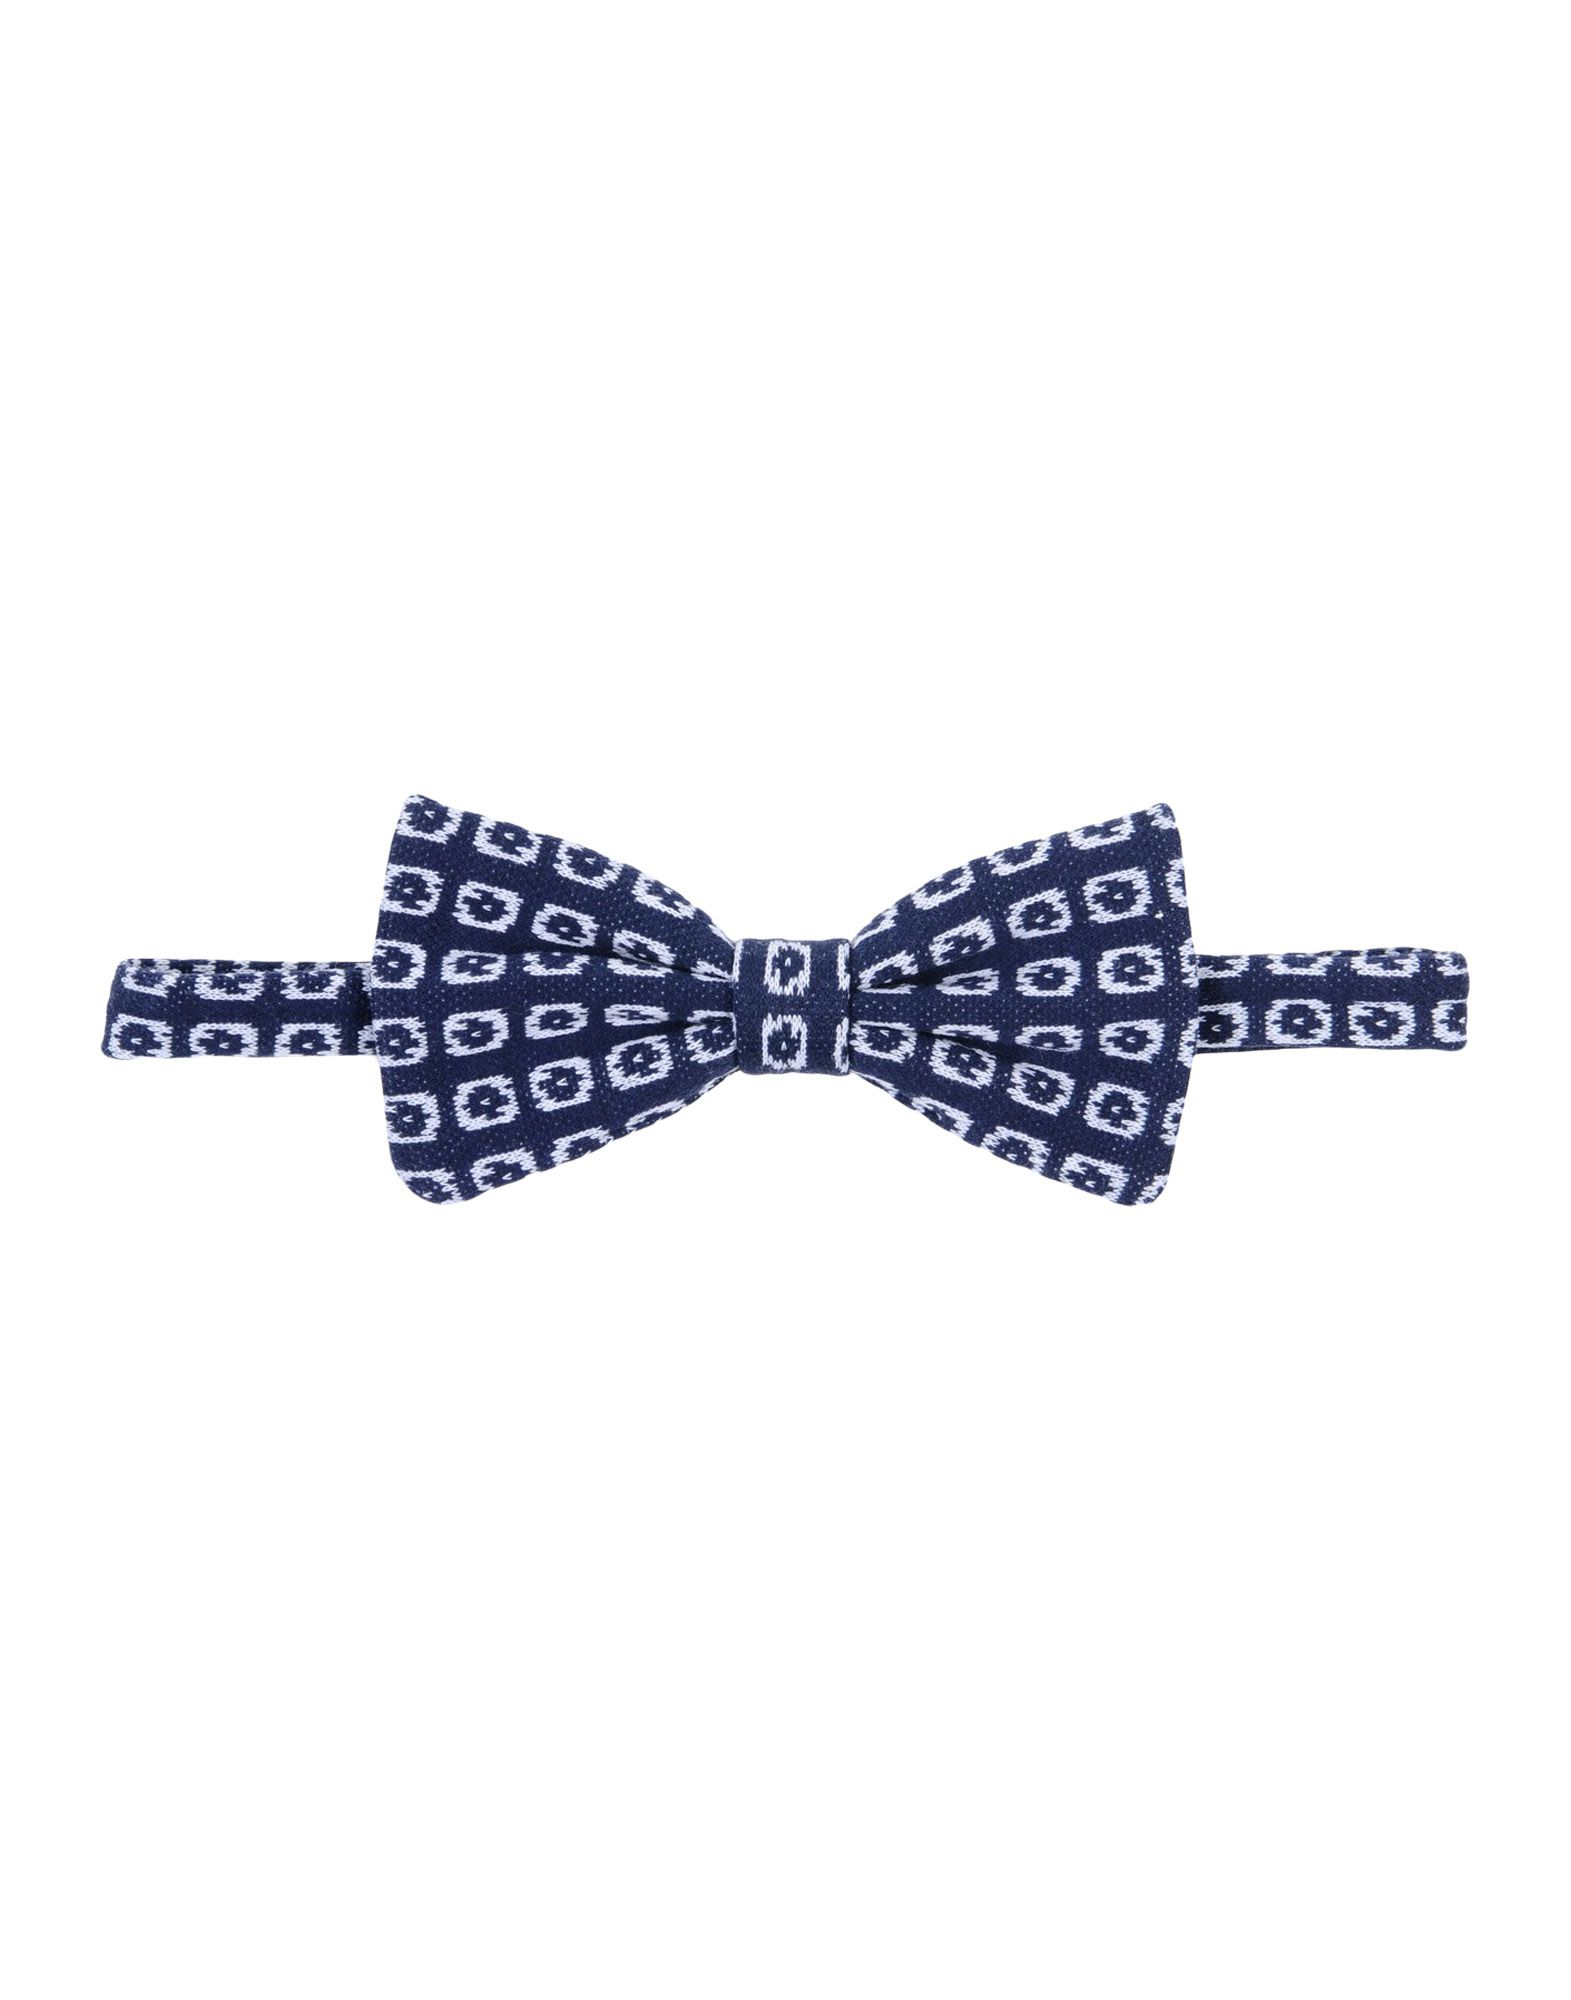 UP TO ONE Bow Tie in Dark Blue